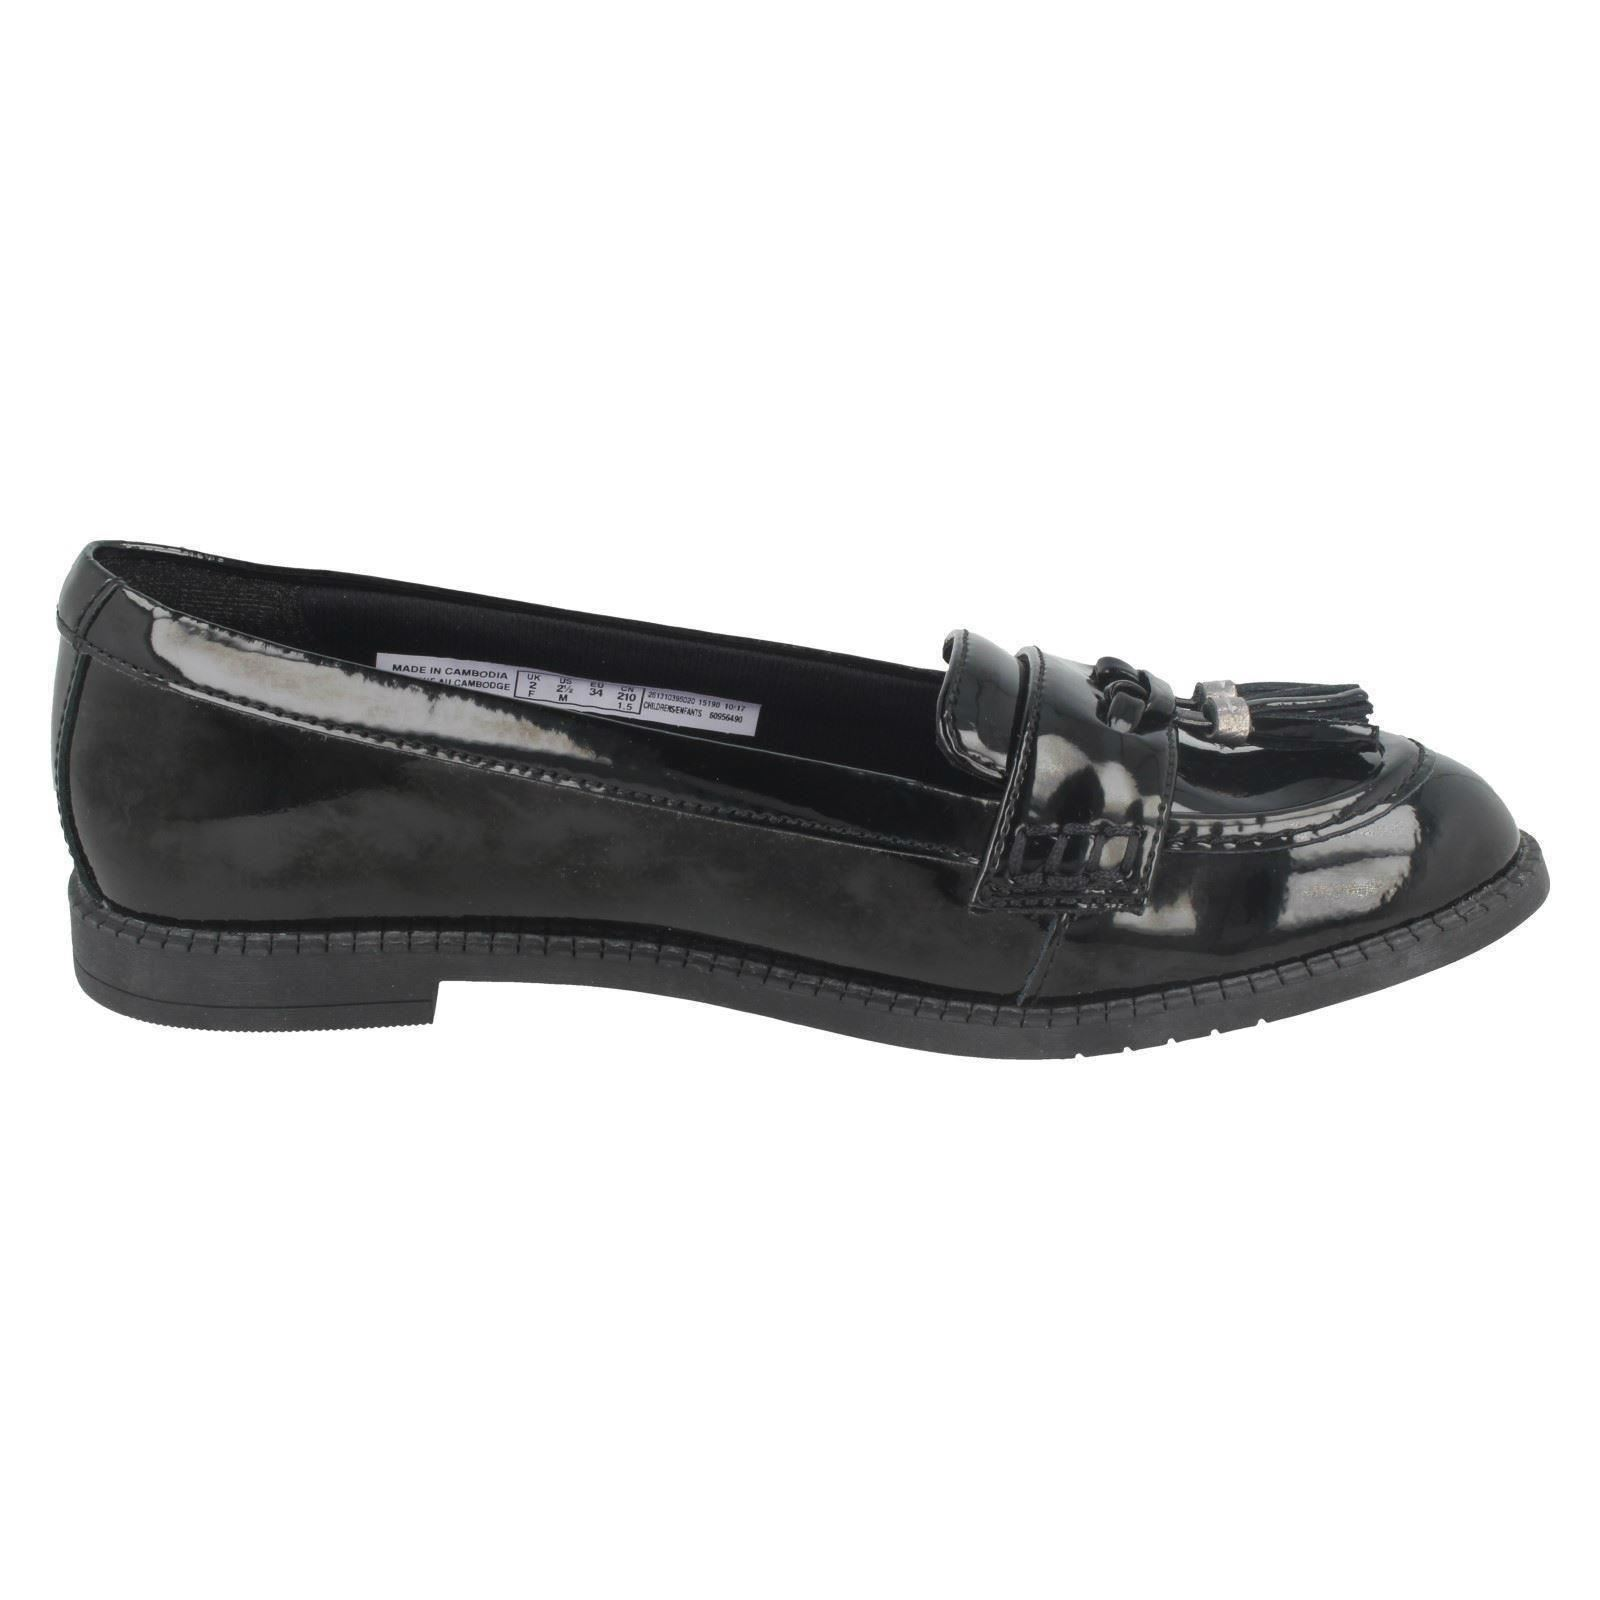 Chicas Clarks Zapatos Escolares Slip On formal Preppy Premio